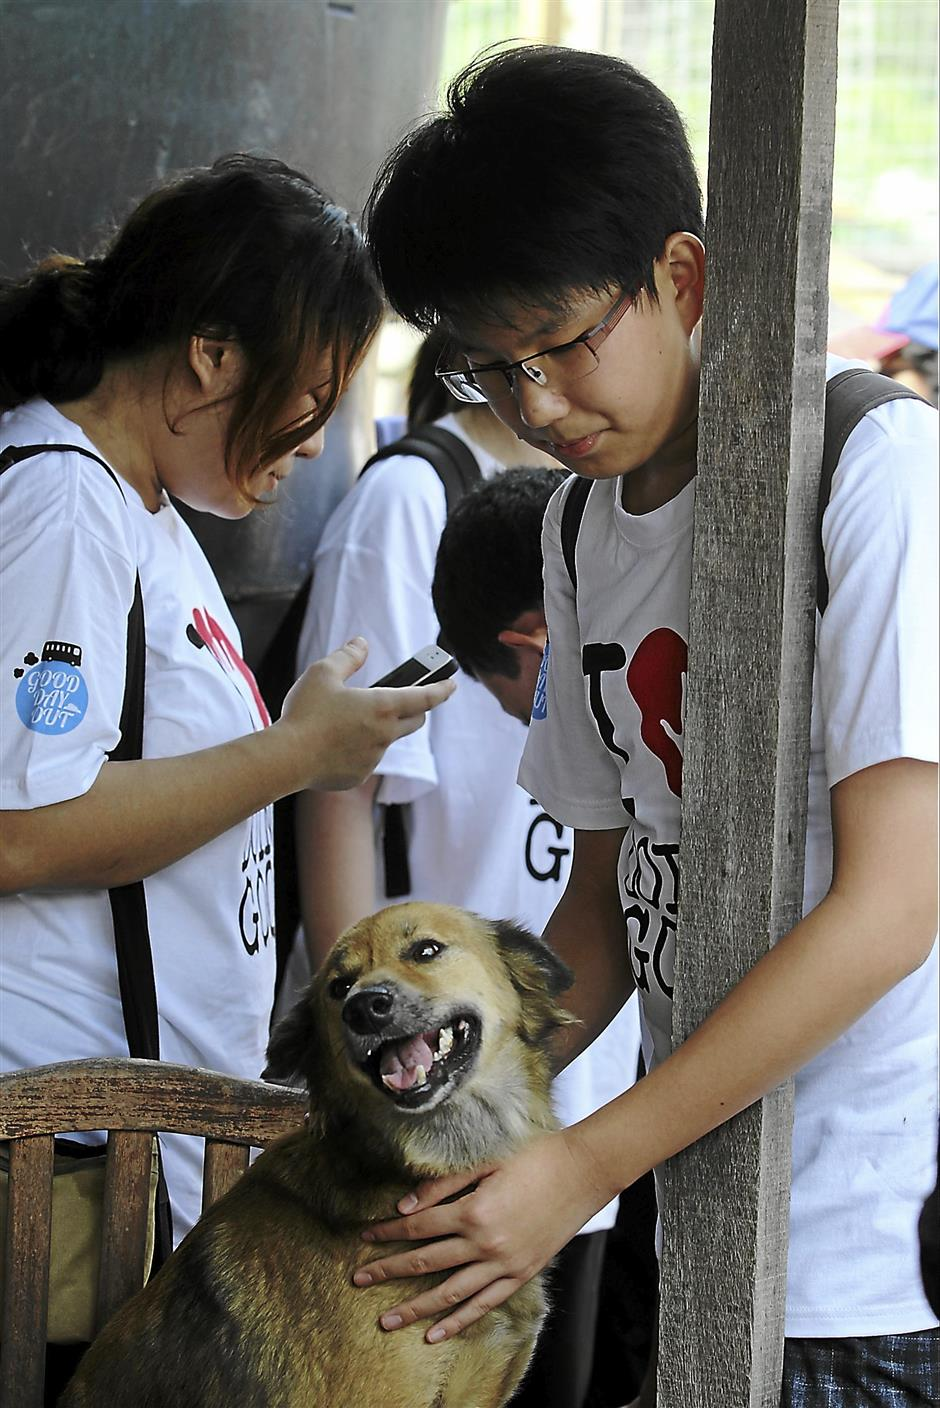 Good Day Out monthly project by Do Good.Volunteer at Furry Friends Farm